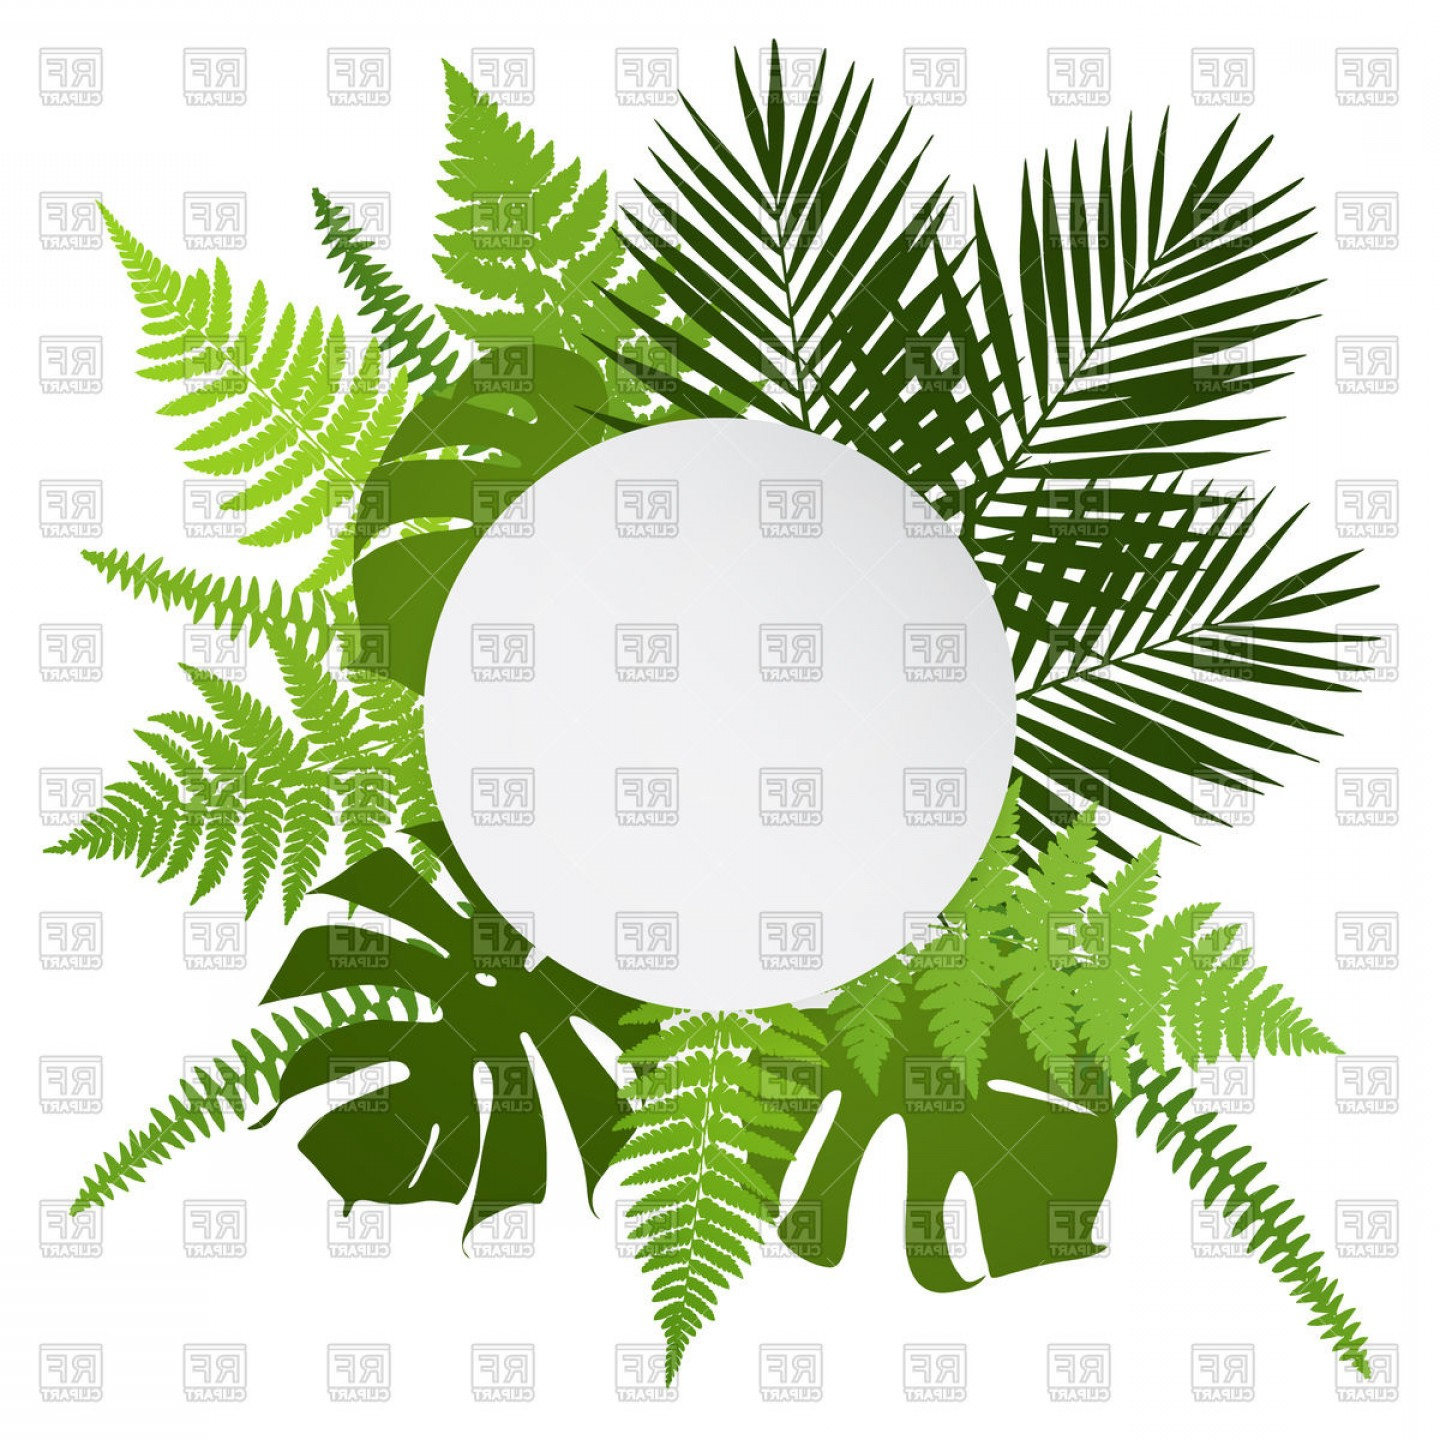 Green Oval Border Vector: Tropical Leaves Round Frame Vector Clipart